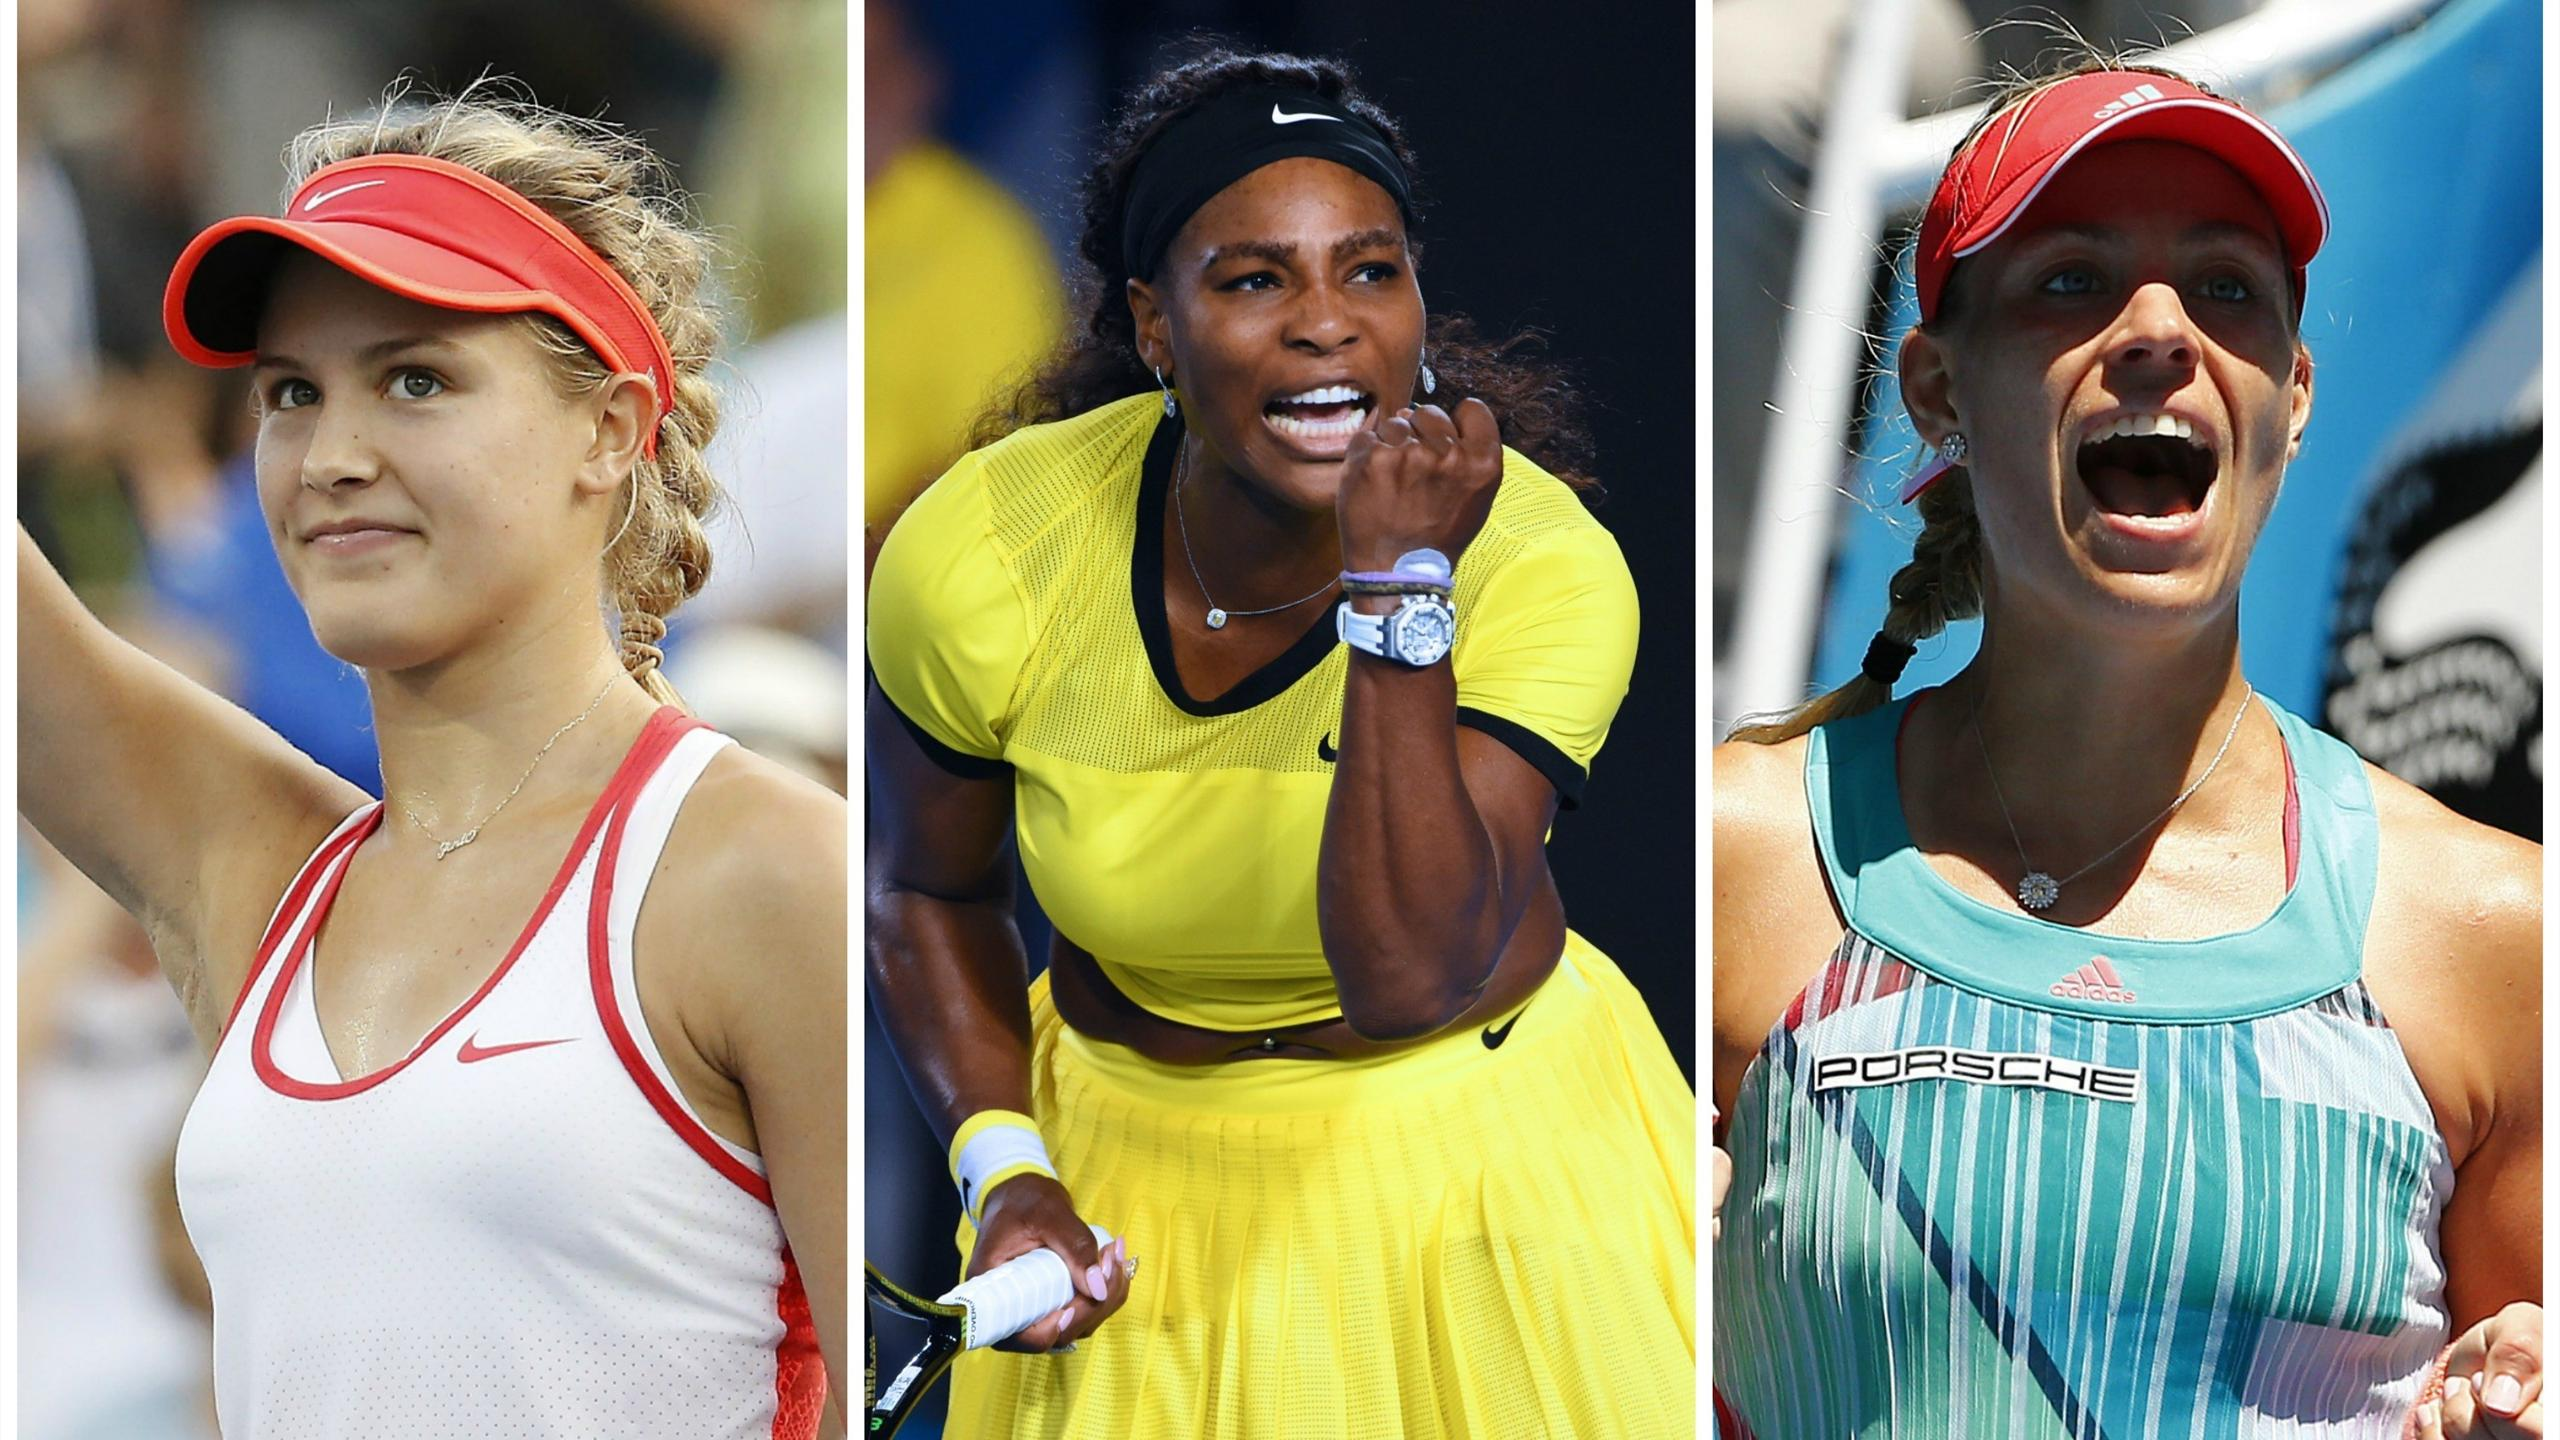 Eugenie Bouchard, Serena Williams and Angelique Kerber